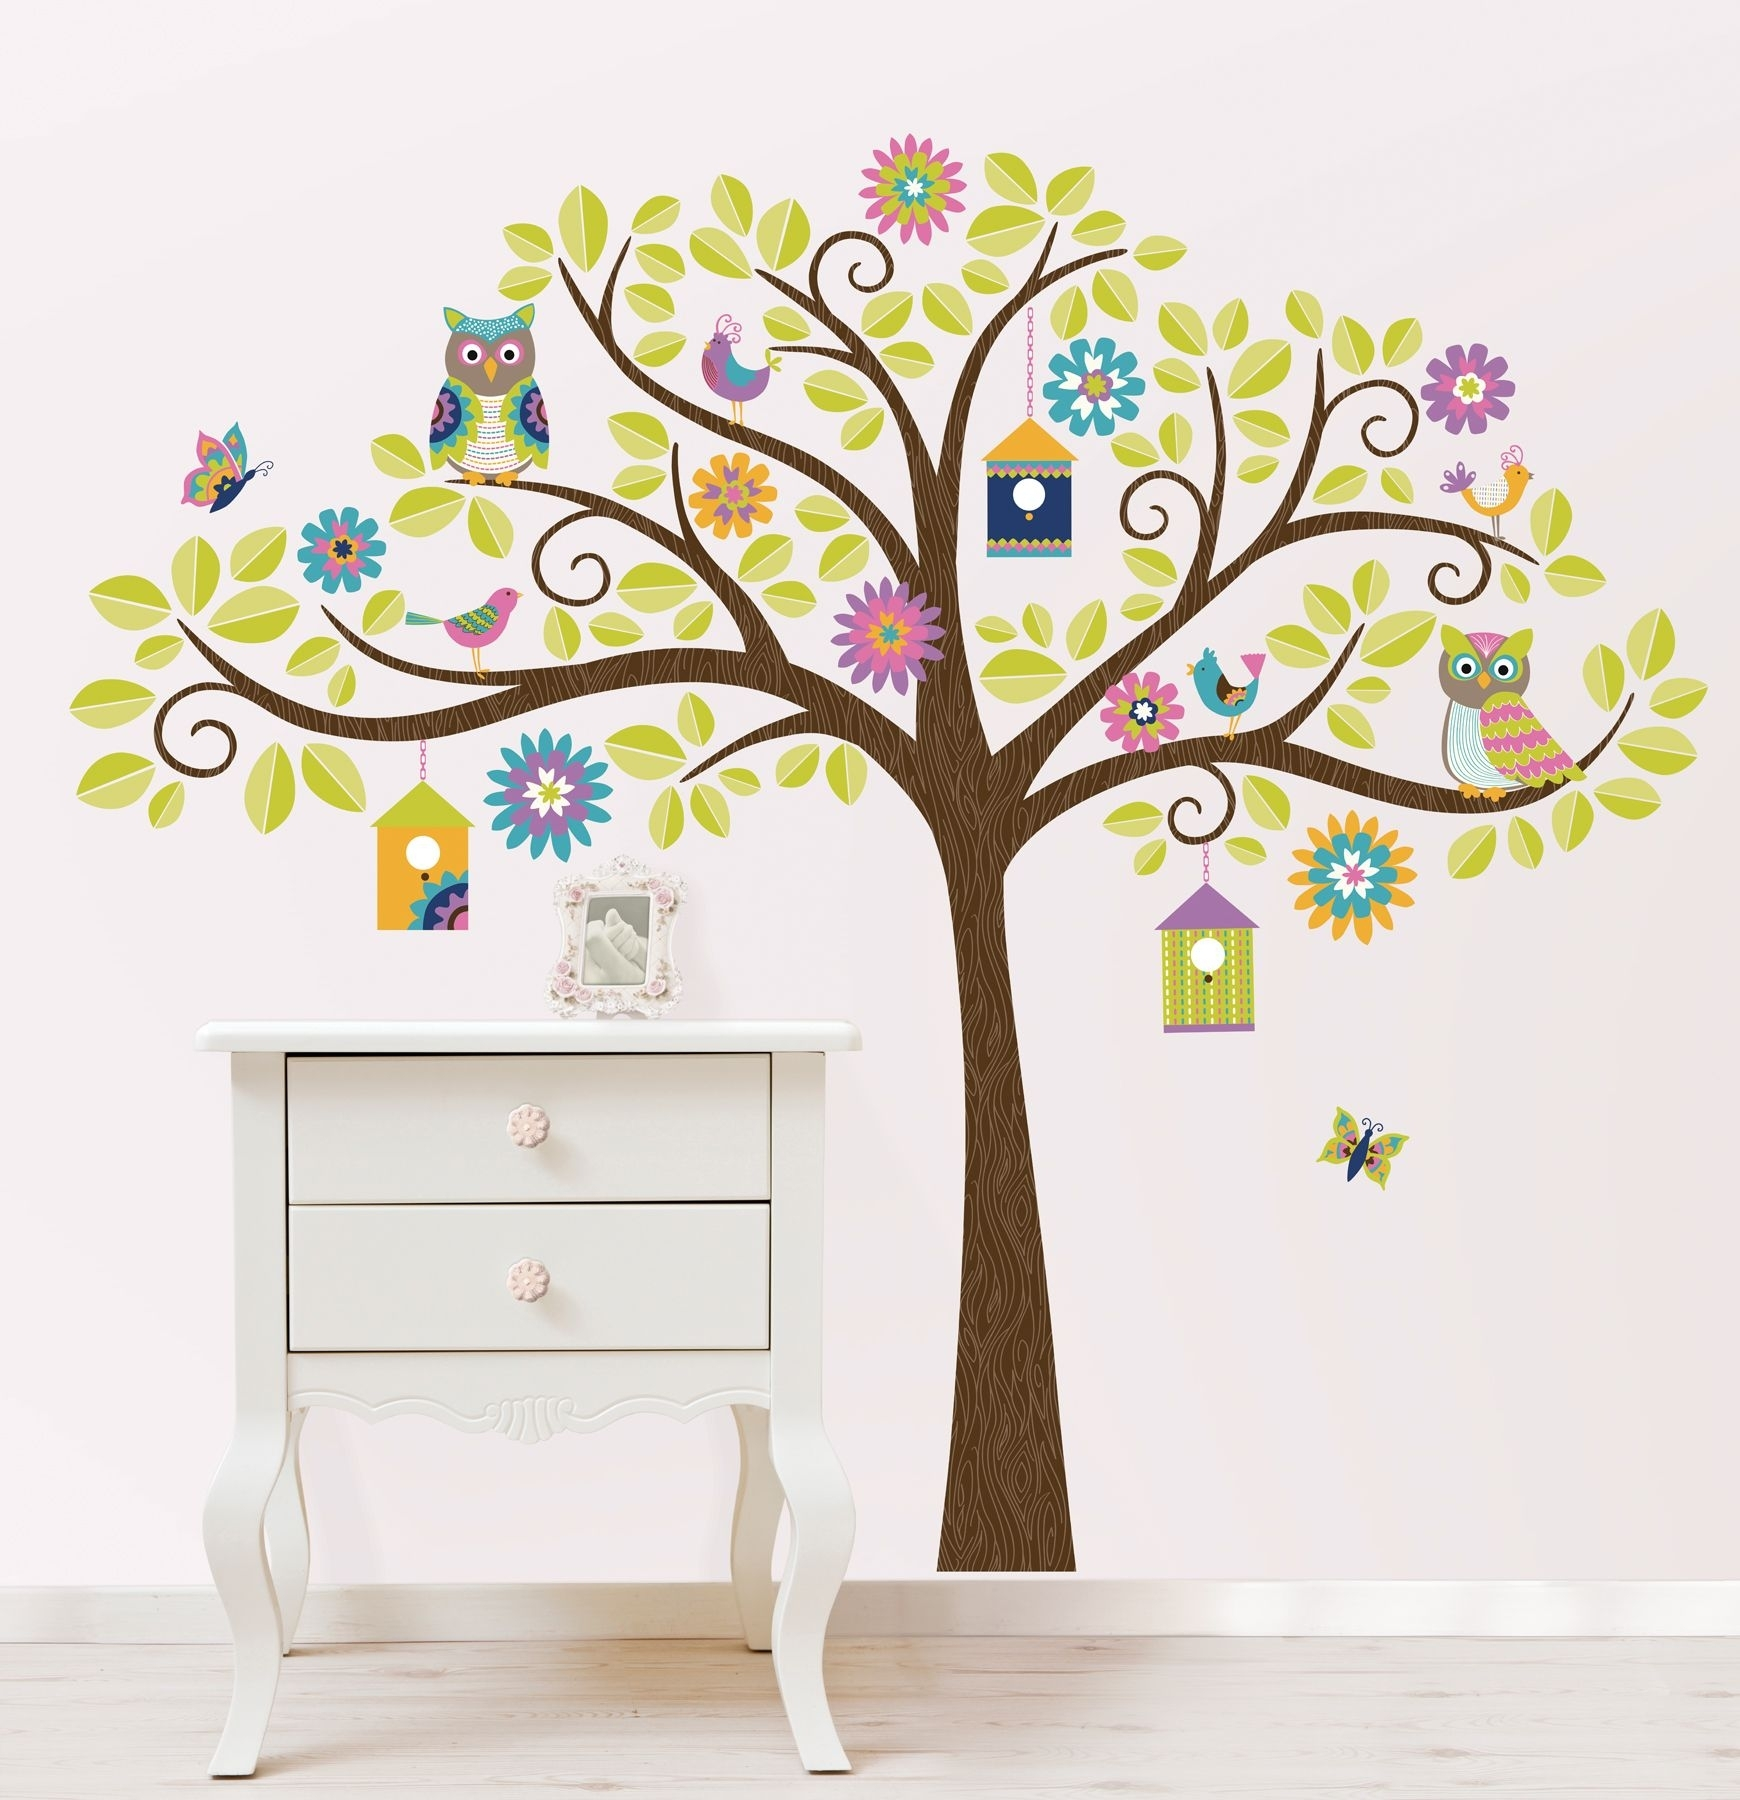 Hoot And Hang Out Tree Wall Art Sticker Kit With Best And Newest Wall Tree Art (Gallery 14 of 20)